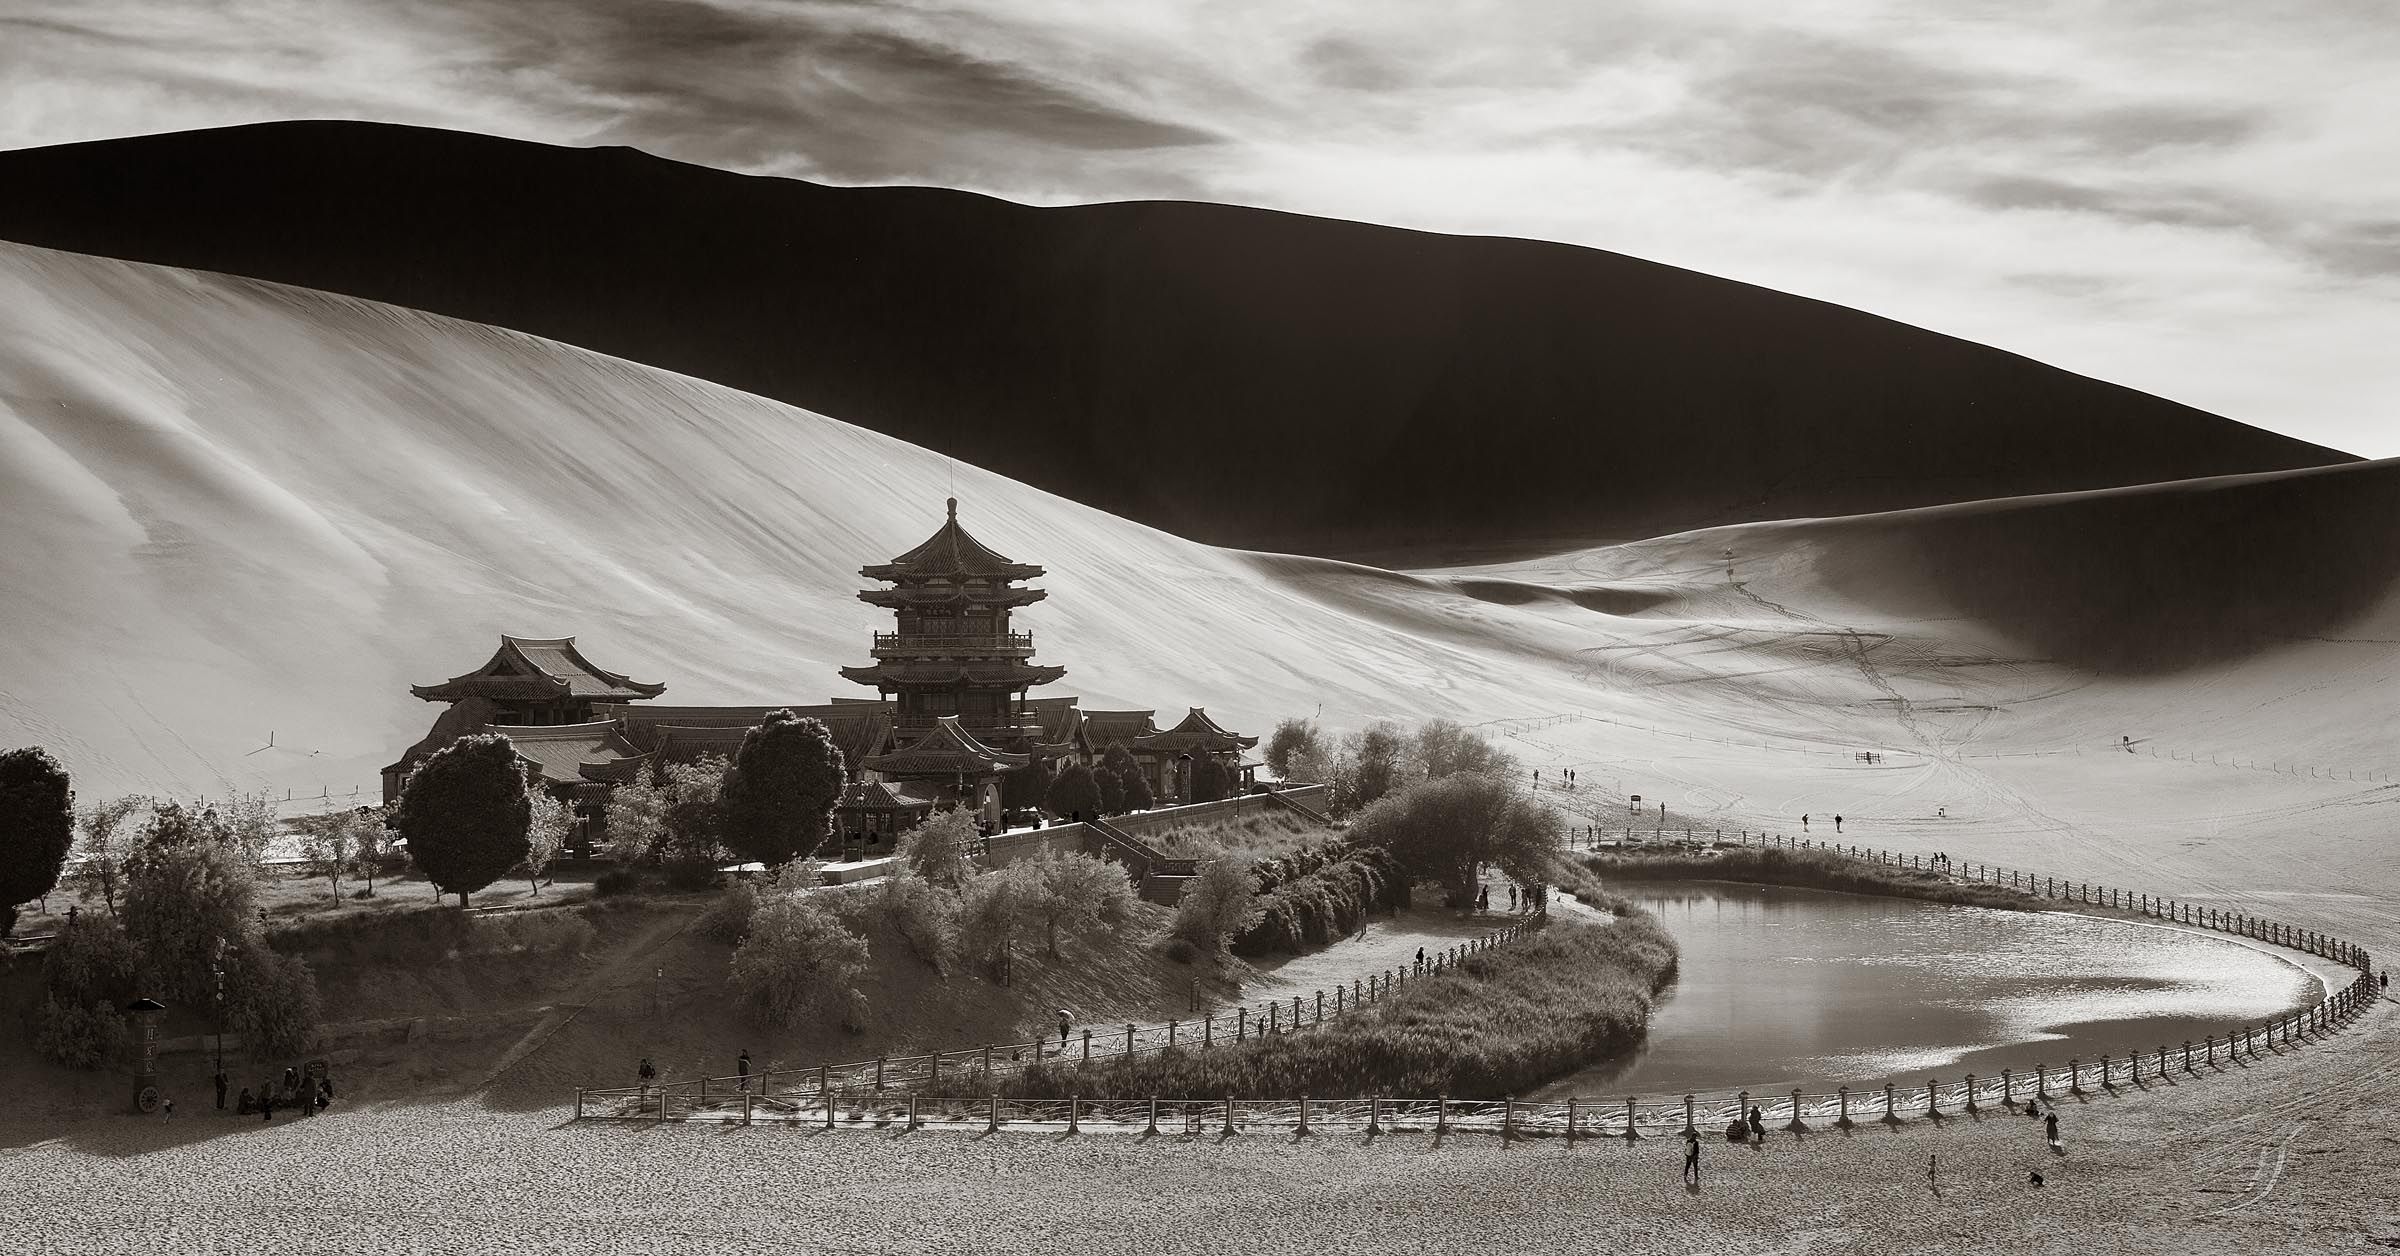 The Sands of Dunhuang